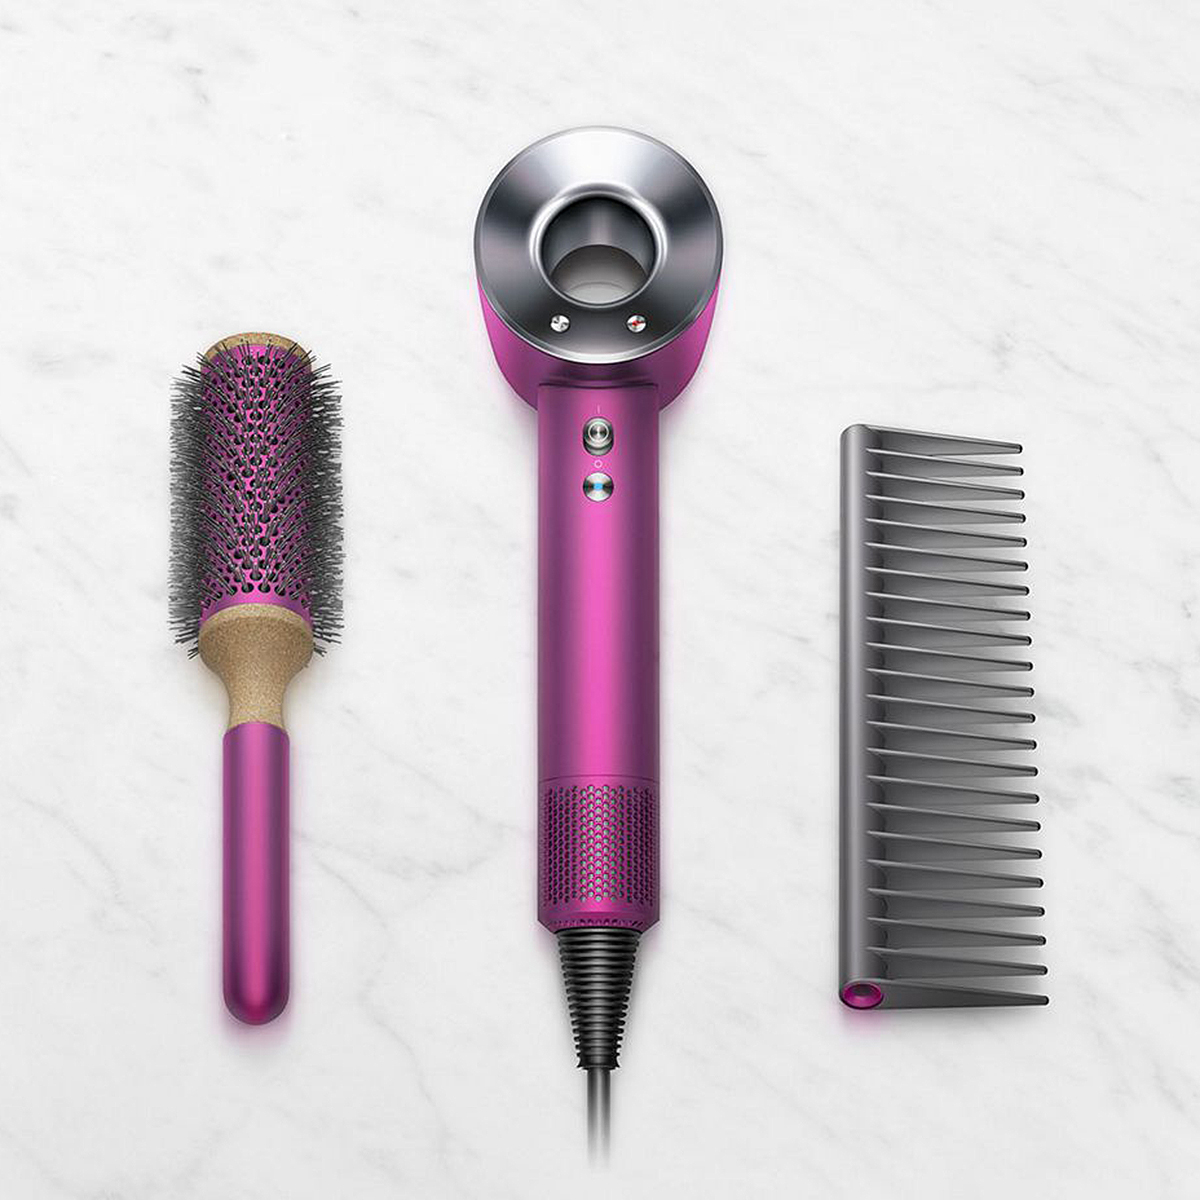 Mother's Day gift edition Dyson Supersonic hair dryer